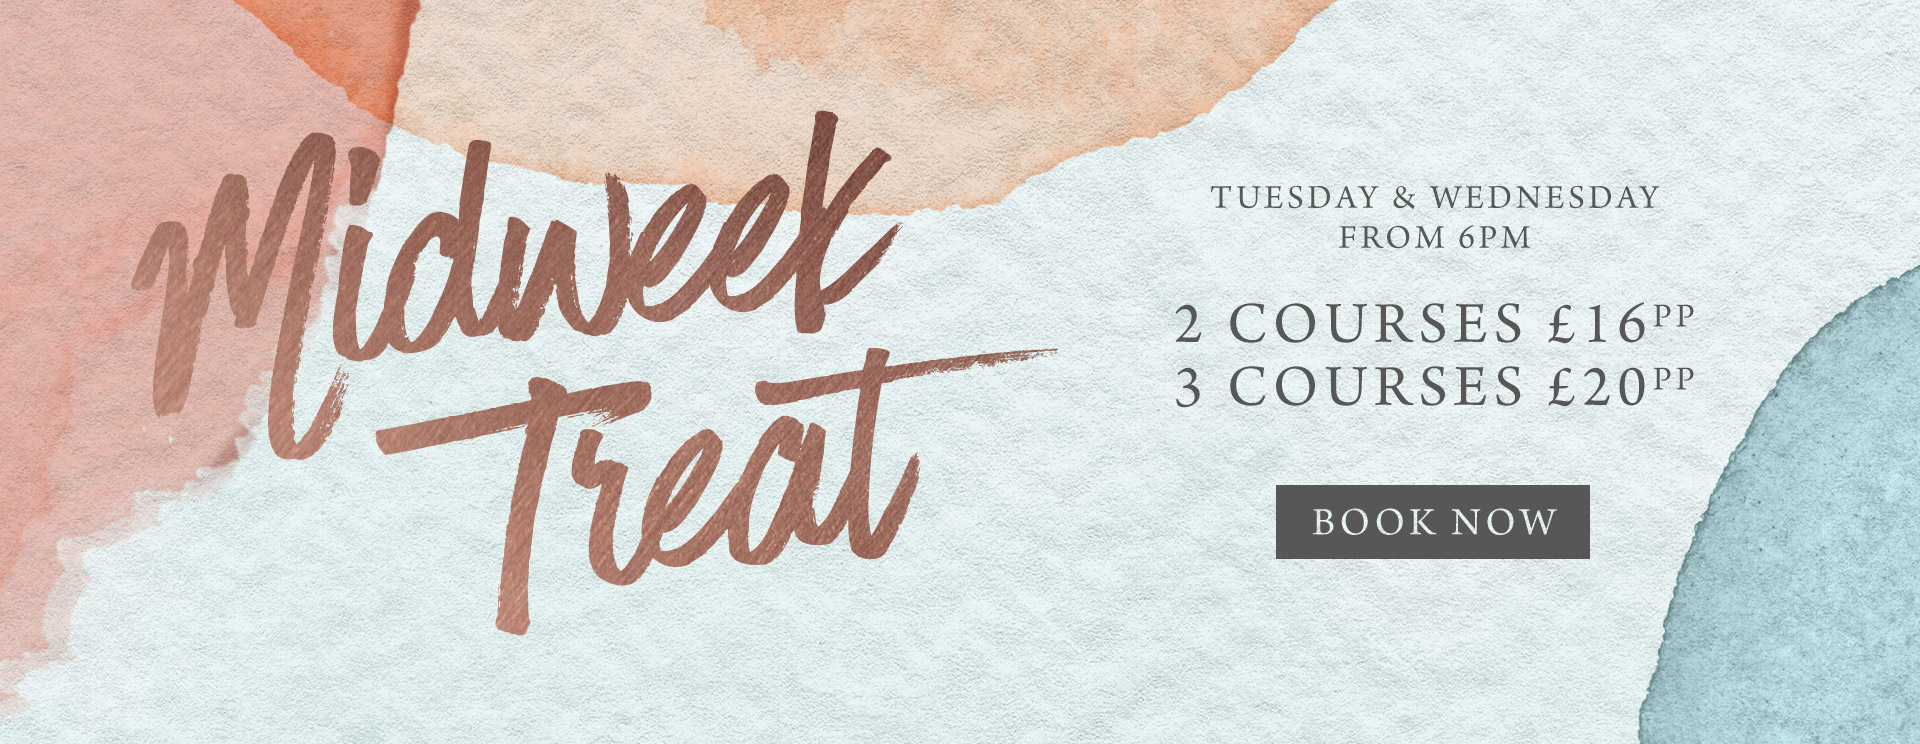 Midweek treat at The Cromwell Cottage - Book now